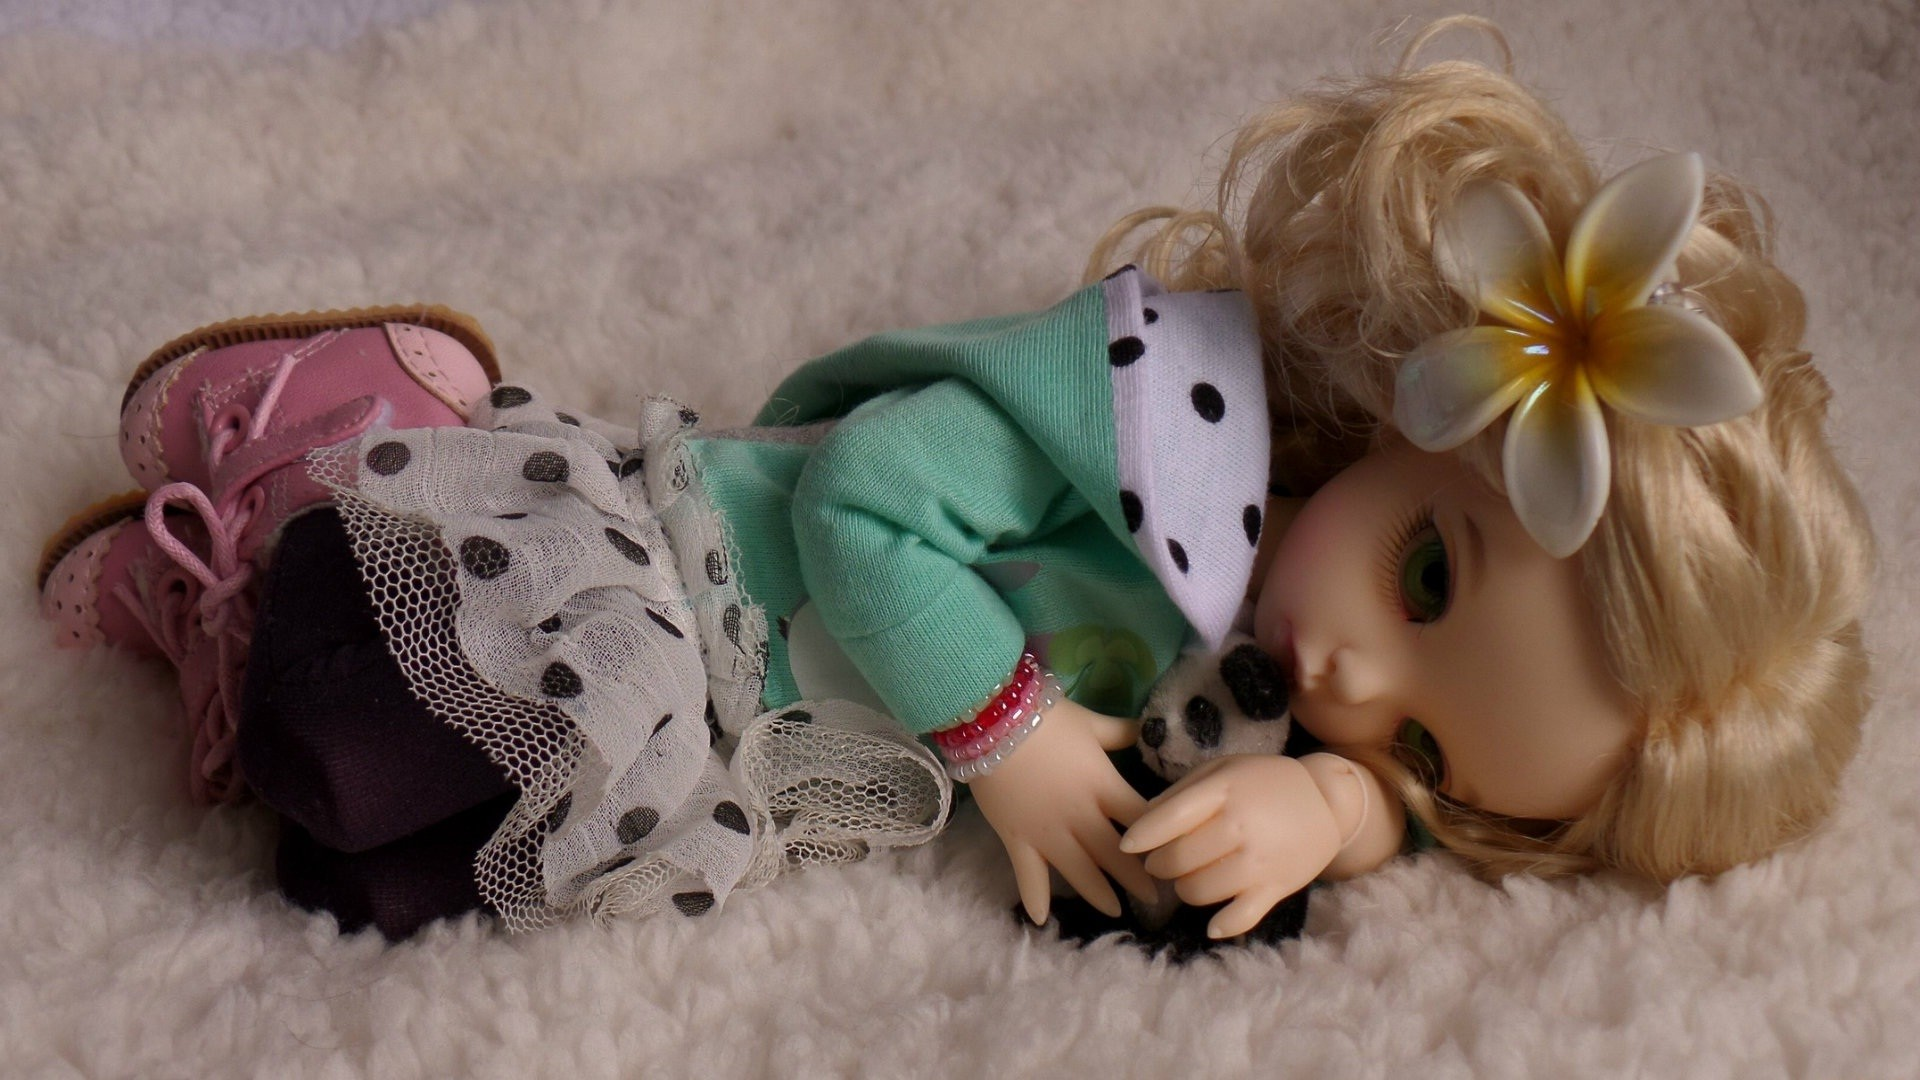 1920x1080 Cute and innocent sad moods doll new wallpapers